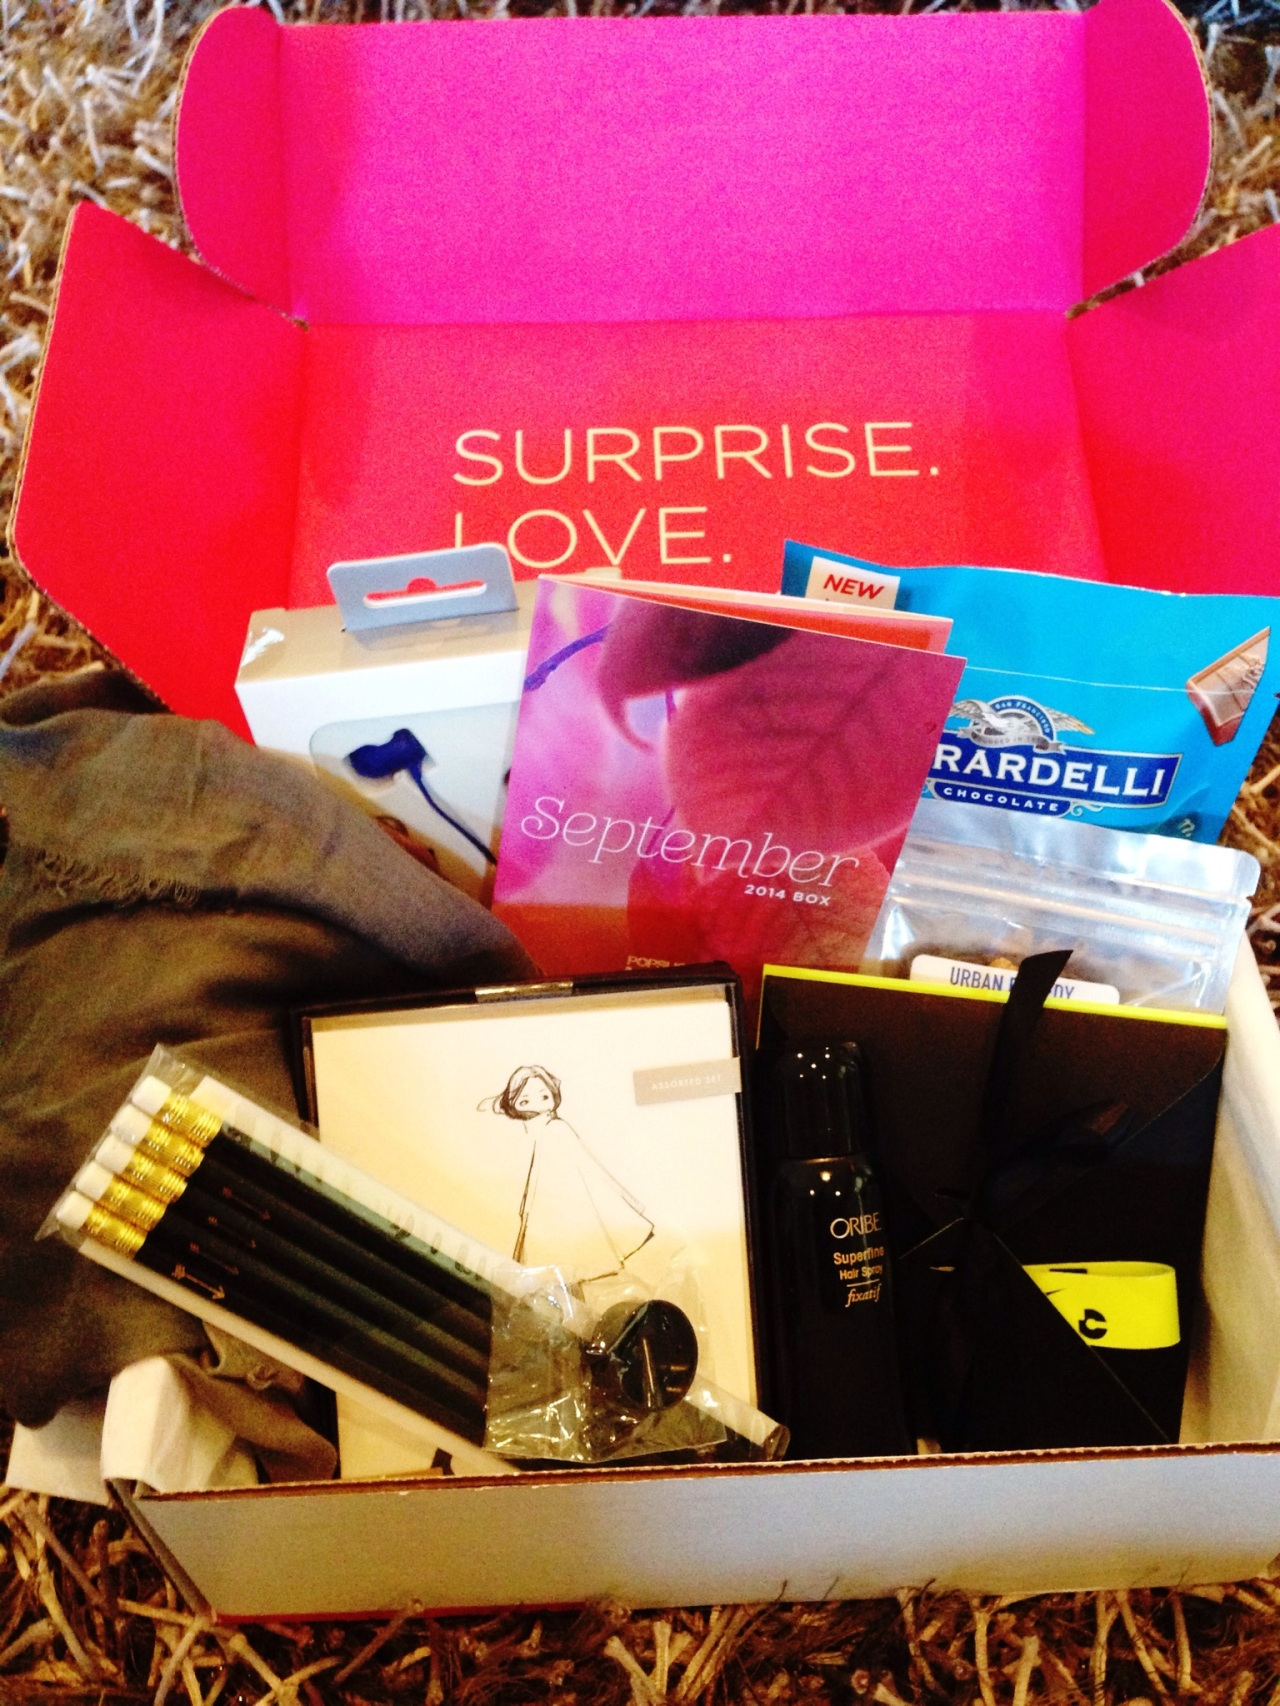 POPSugar Must Have Box Review - September 2014